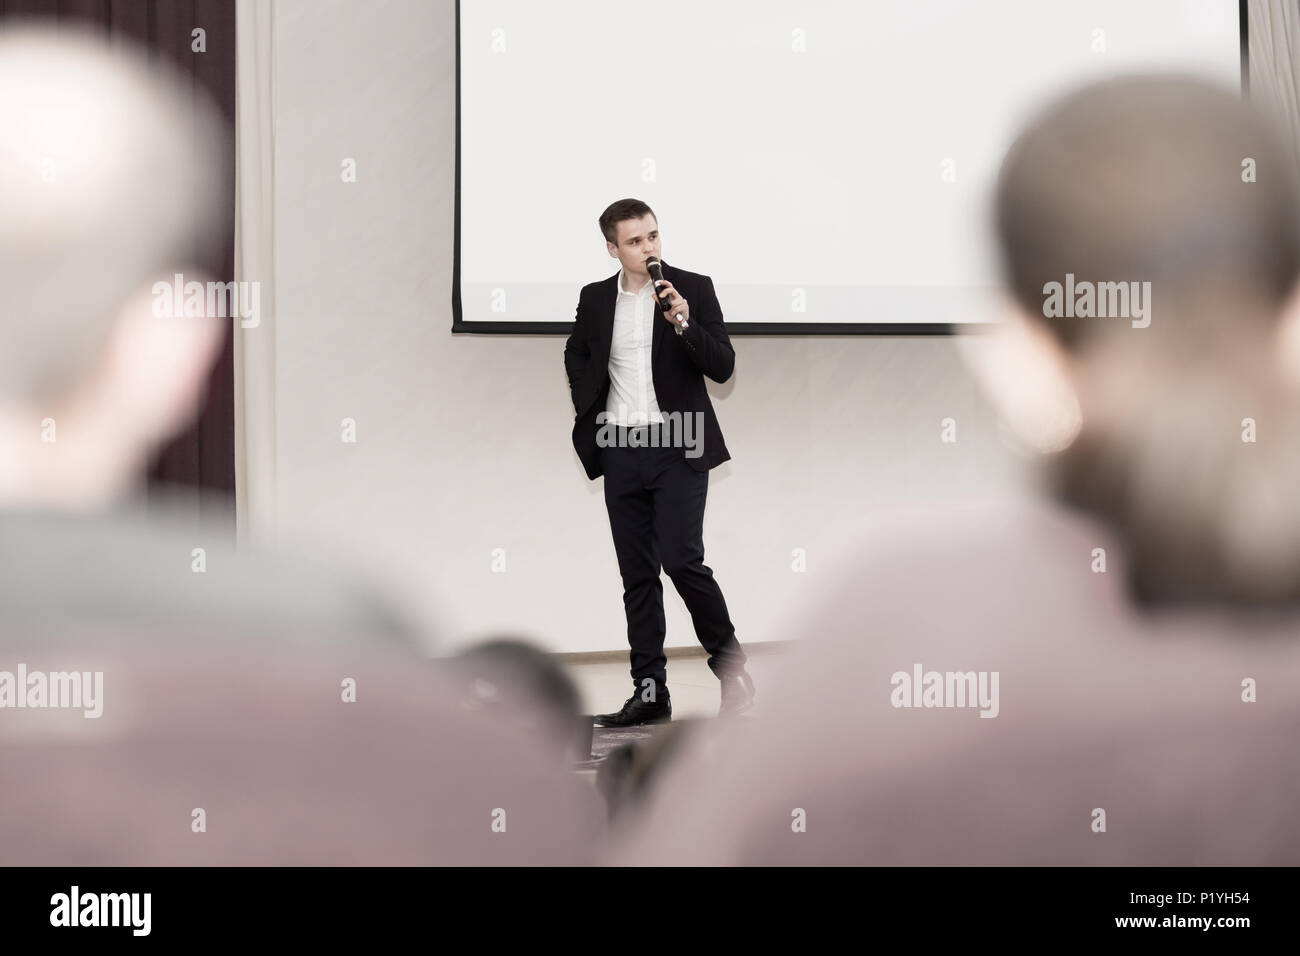 speaker conducts the business of the conference standing in front of a large white screen on the stage in the conference room - Stock Image